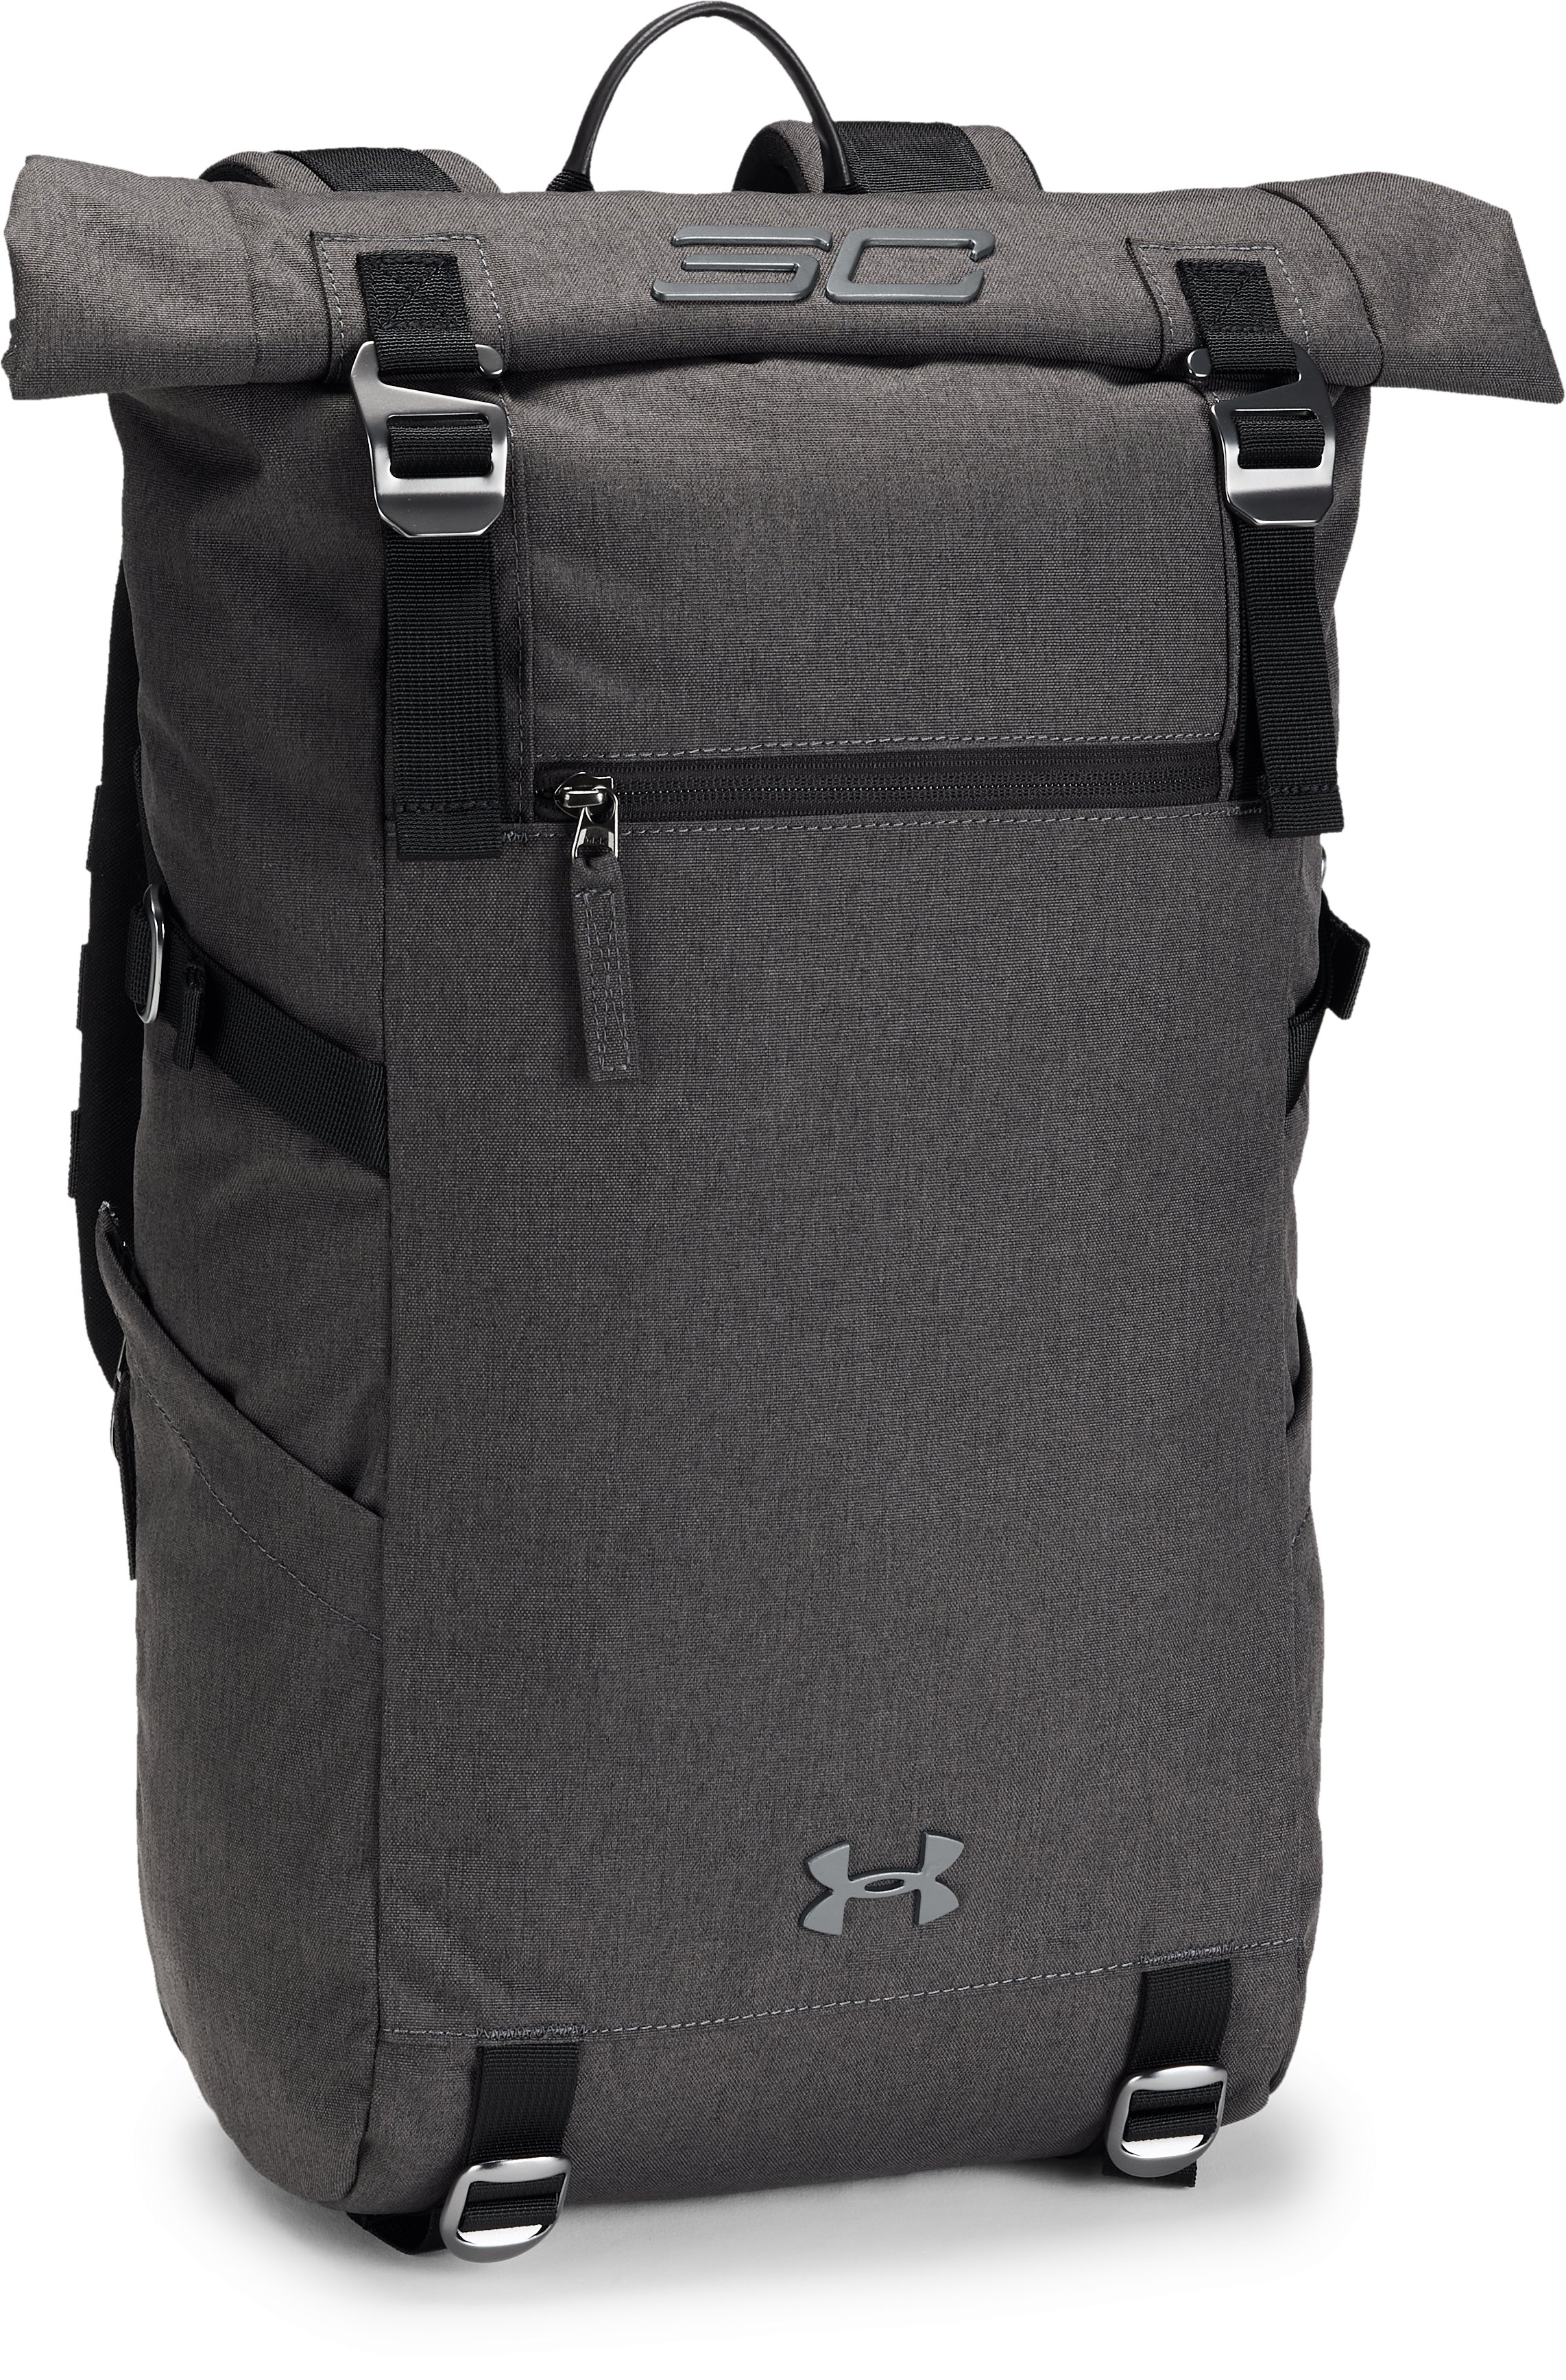 SC30 Signature Rolltop Backpack, BLACK FULL HEATHER